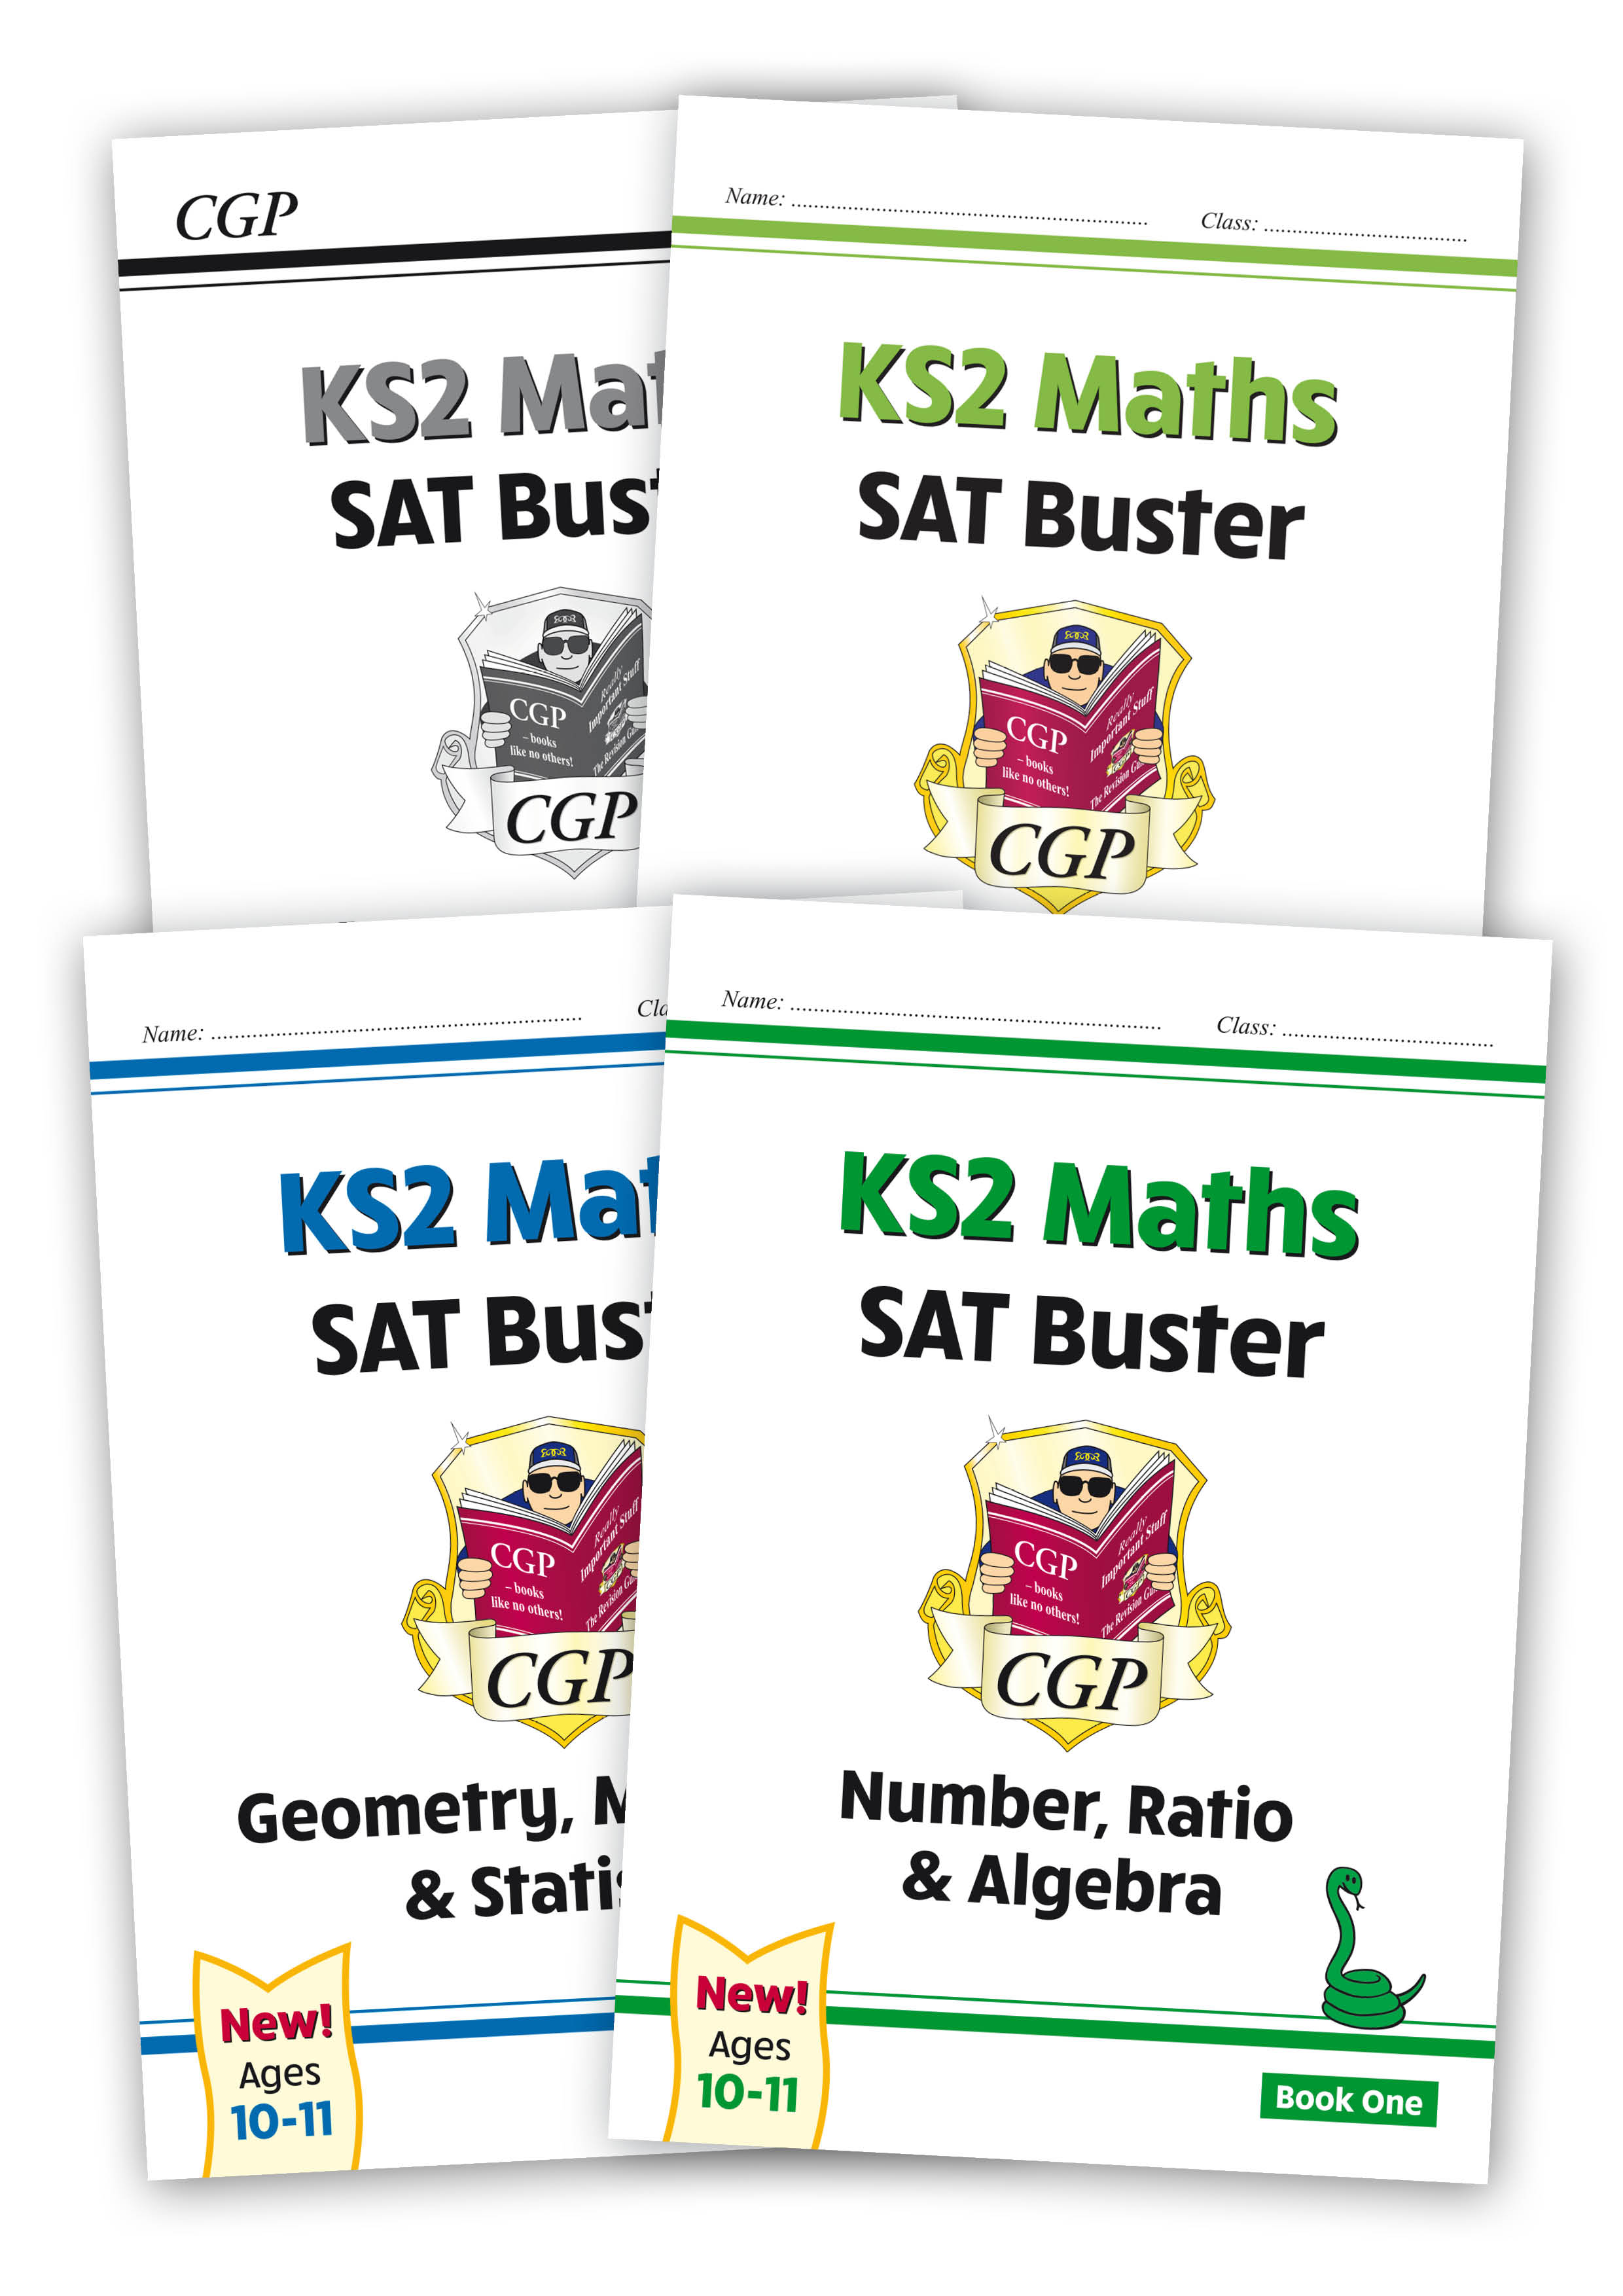 M6SBB24 - New KS2 Maths SAT Buster Book 1 Bundle - includes answers (for the 2021 tests)